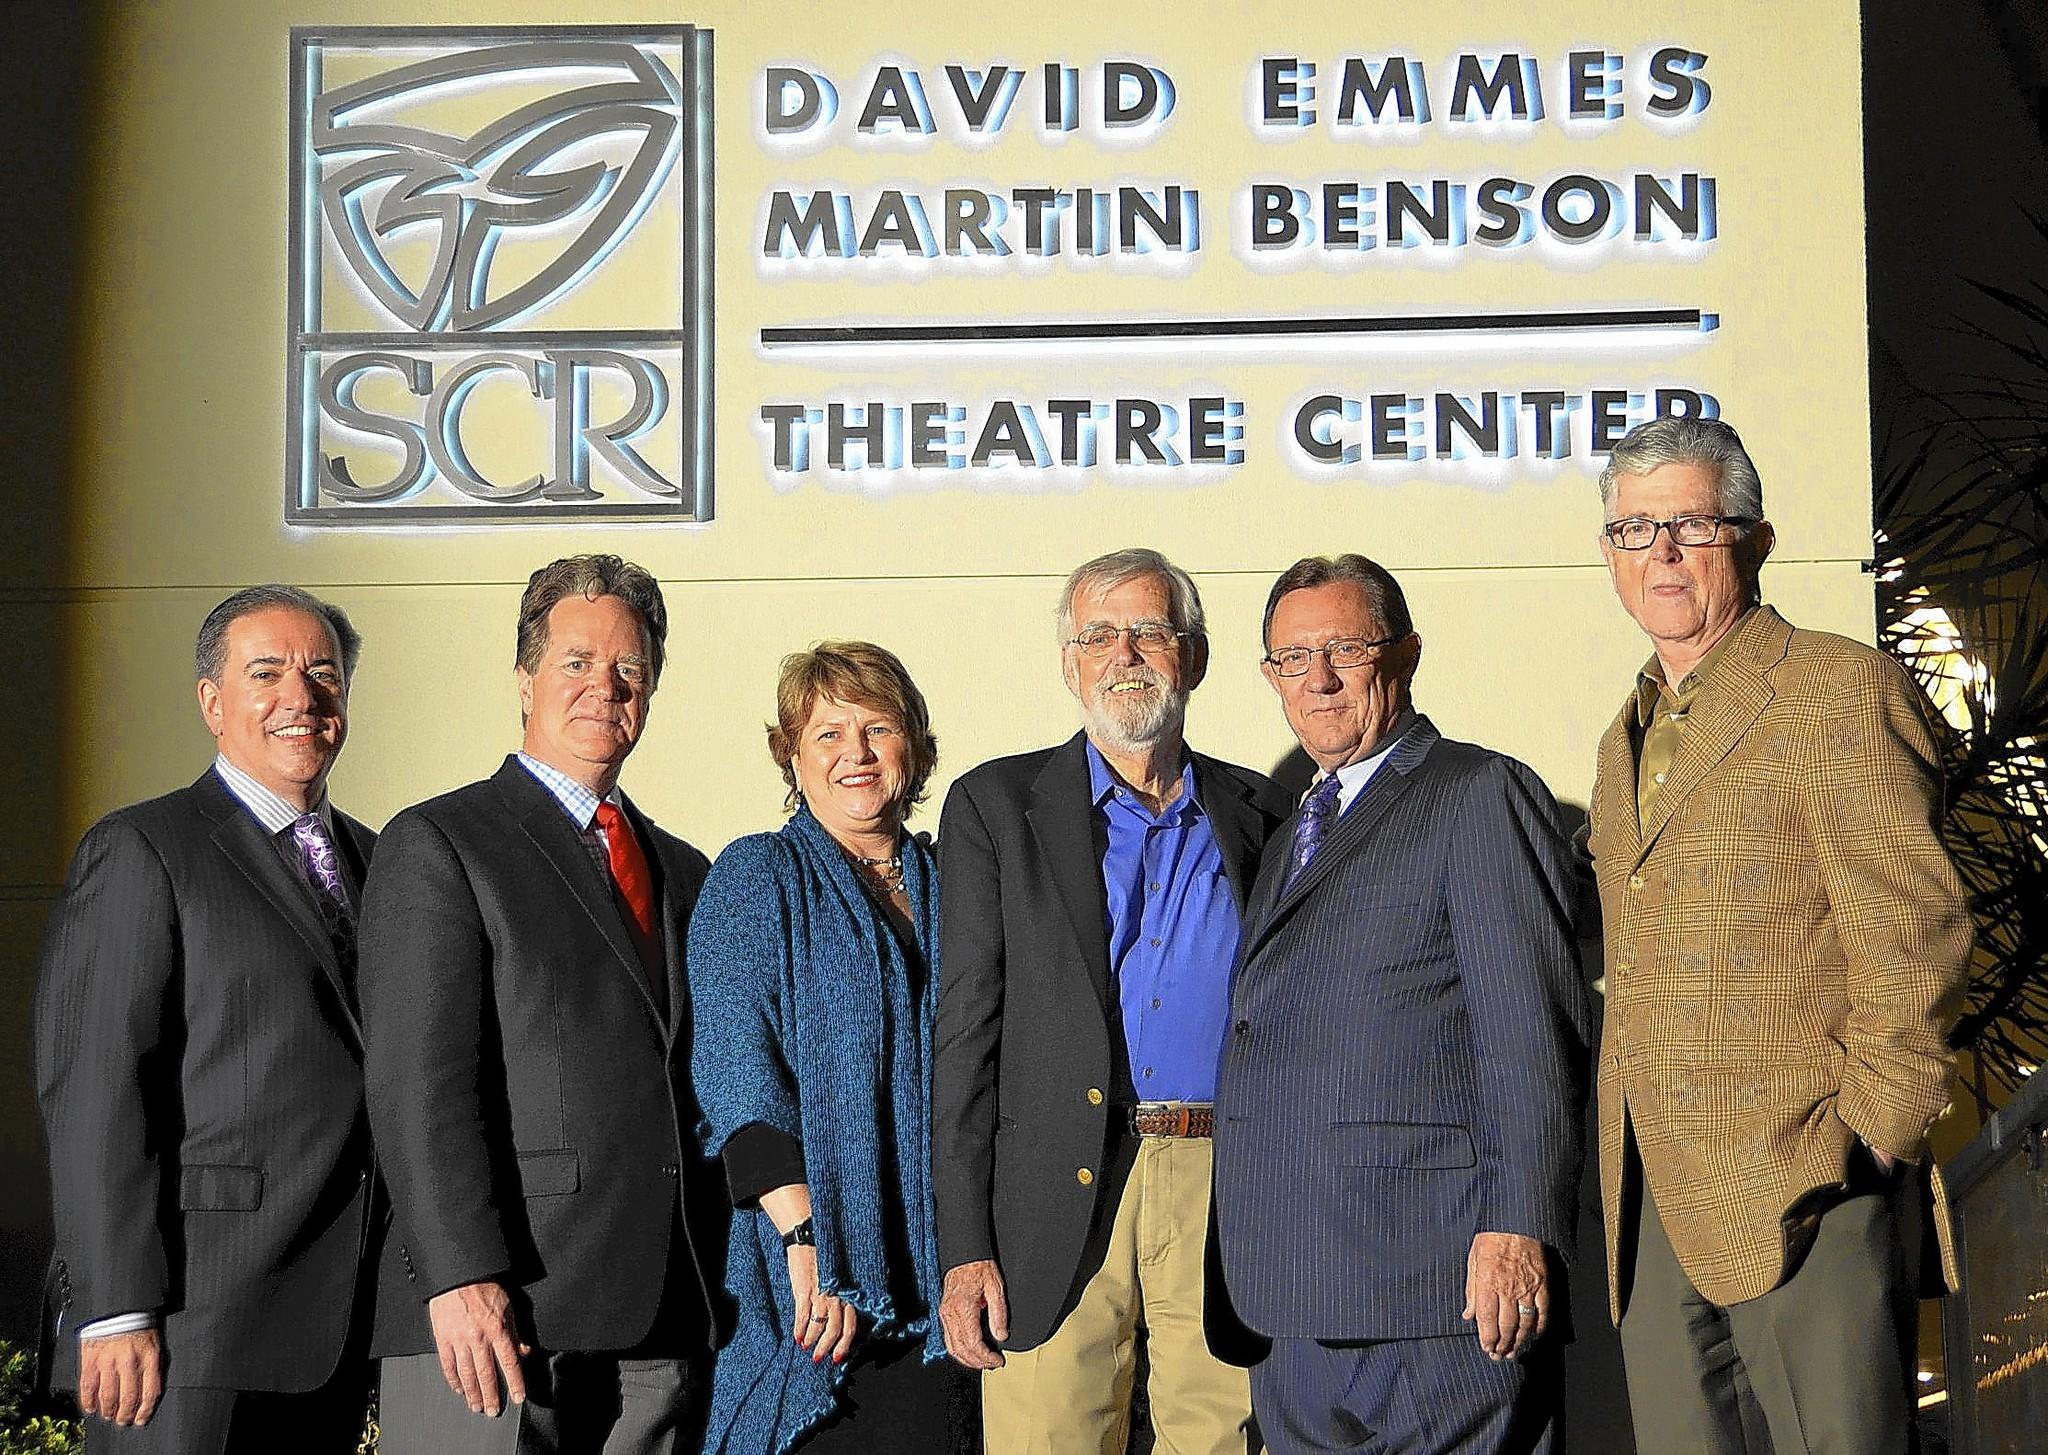 Damien Jordan, president SCR Board of Trustees; Artistic Director Marc Masterson; Managing Director Paula Tomei; honoree Martin Benson, Trustee Paul Folino; and honoree David Emmes pause for a photo under the new marquee sign during a renaming ceremony at South Coast Reperetory in Costa Mesa.